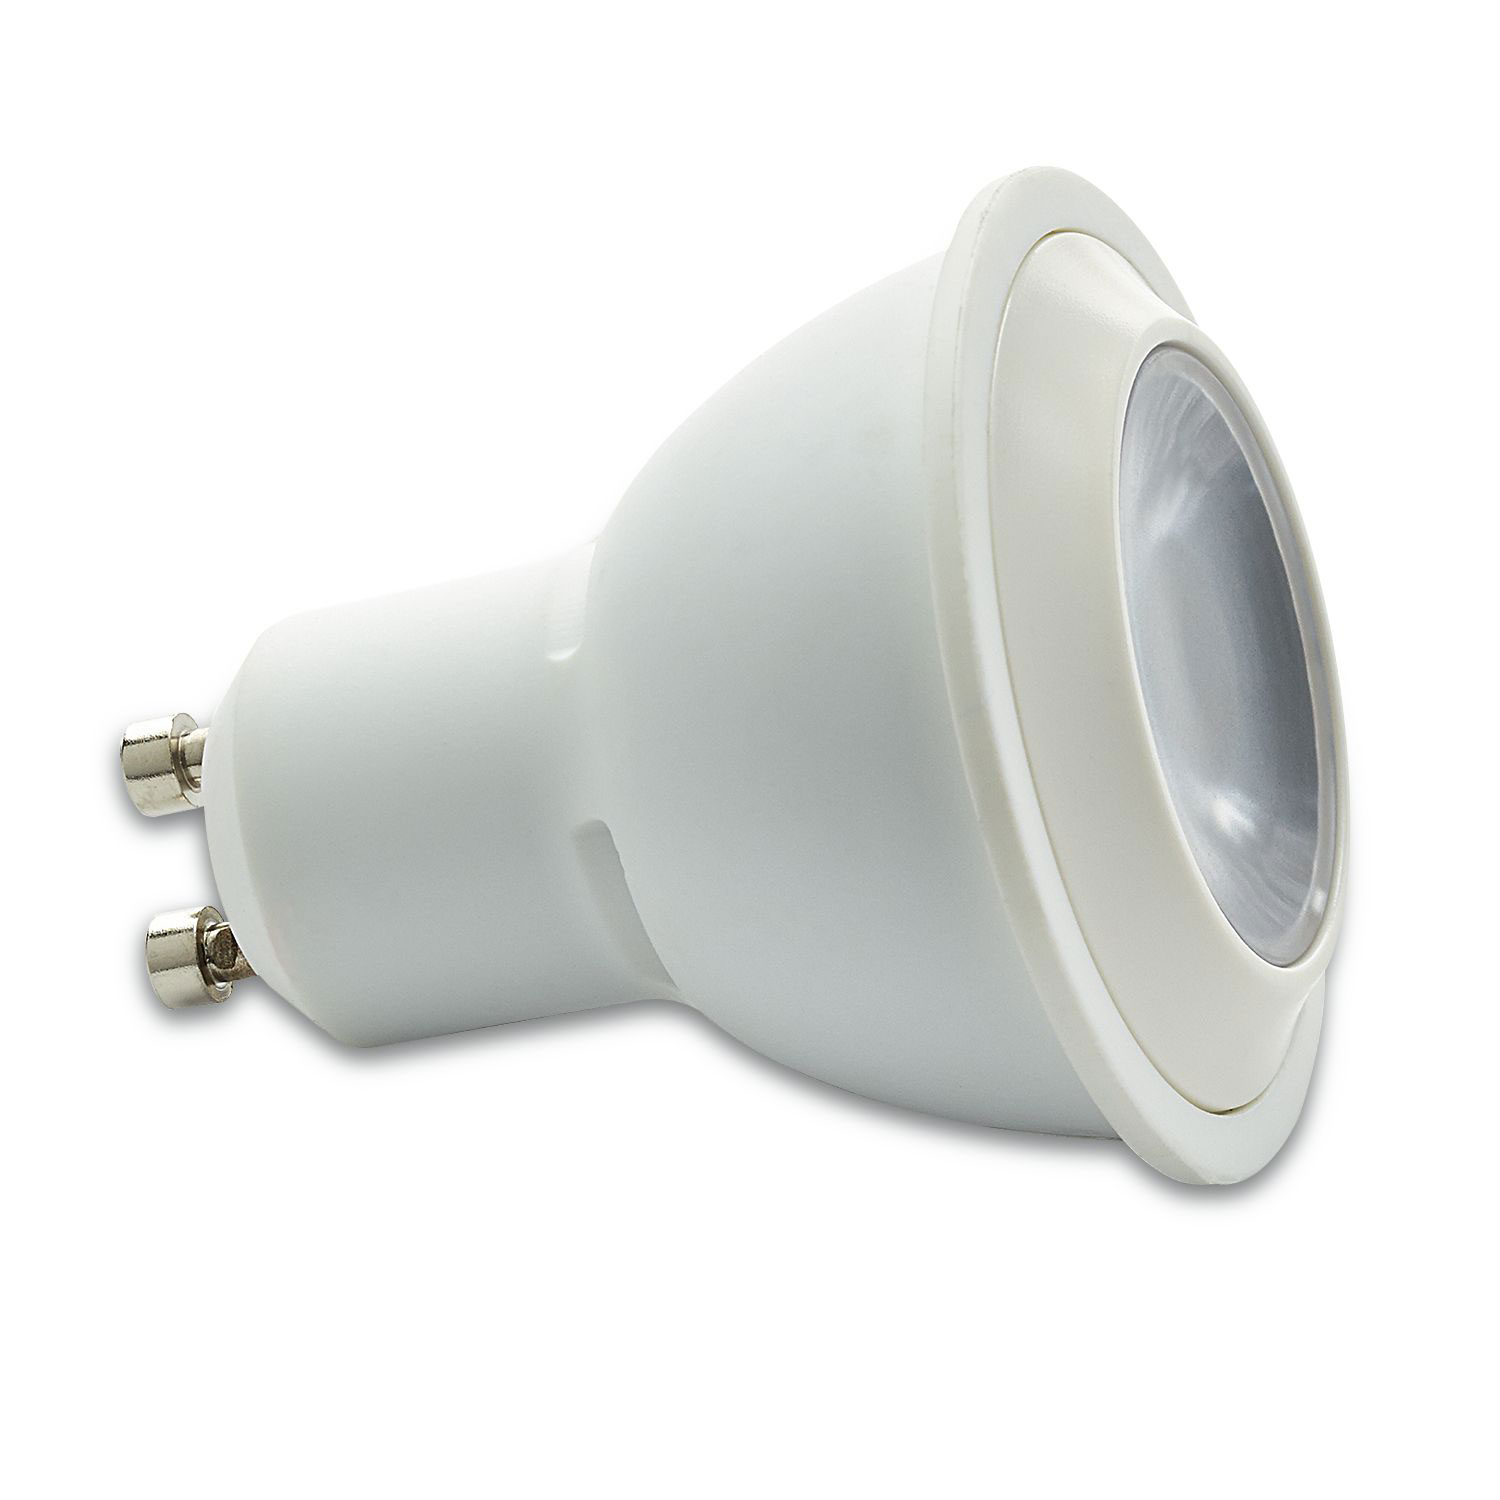 Verbatim, LED, MR16 Bulb ,Warm White, 987866W, 3000K, G10-L380-C30-B38-N